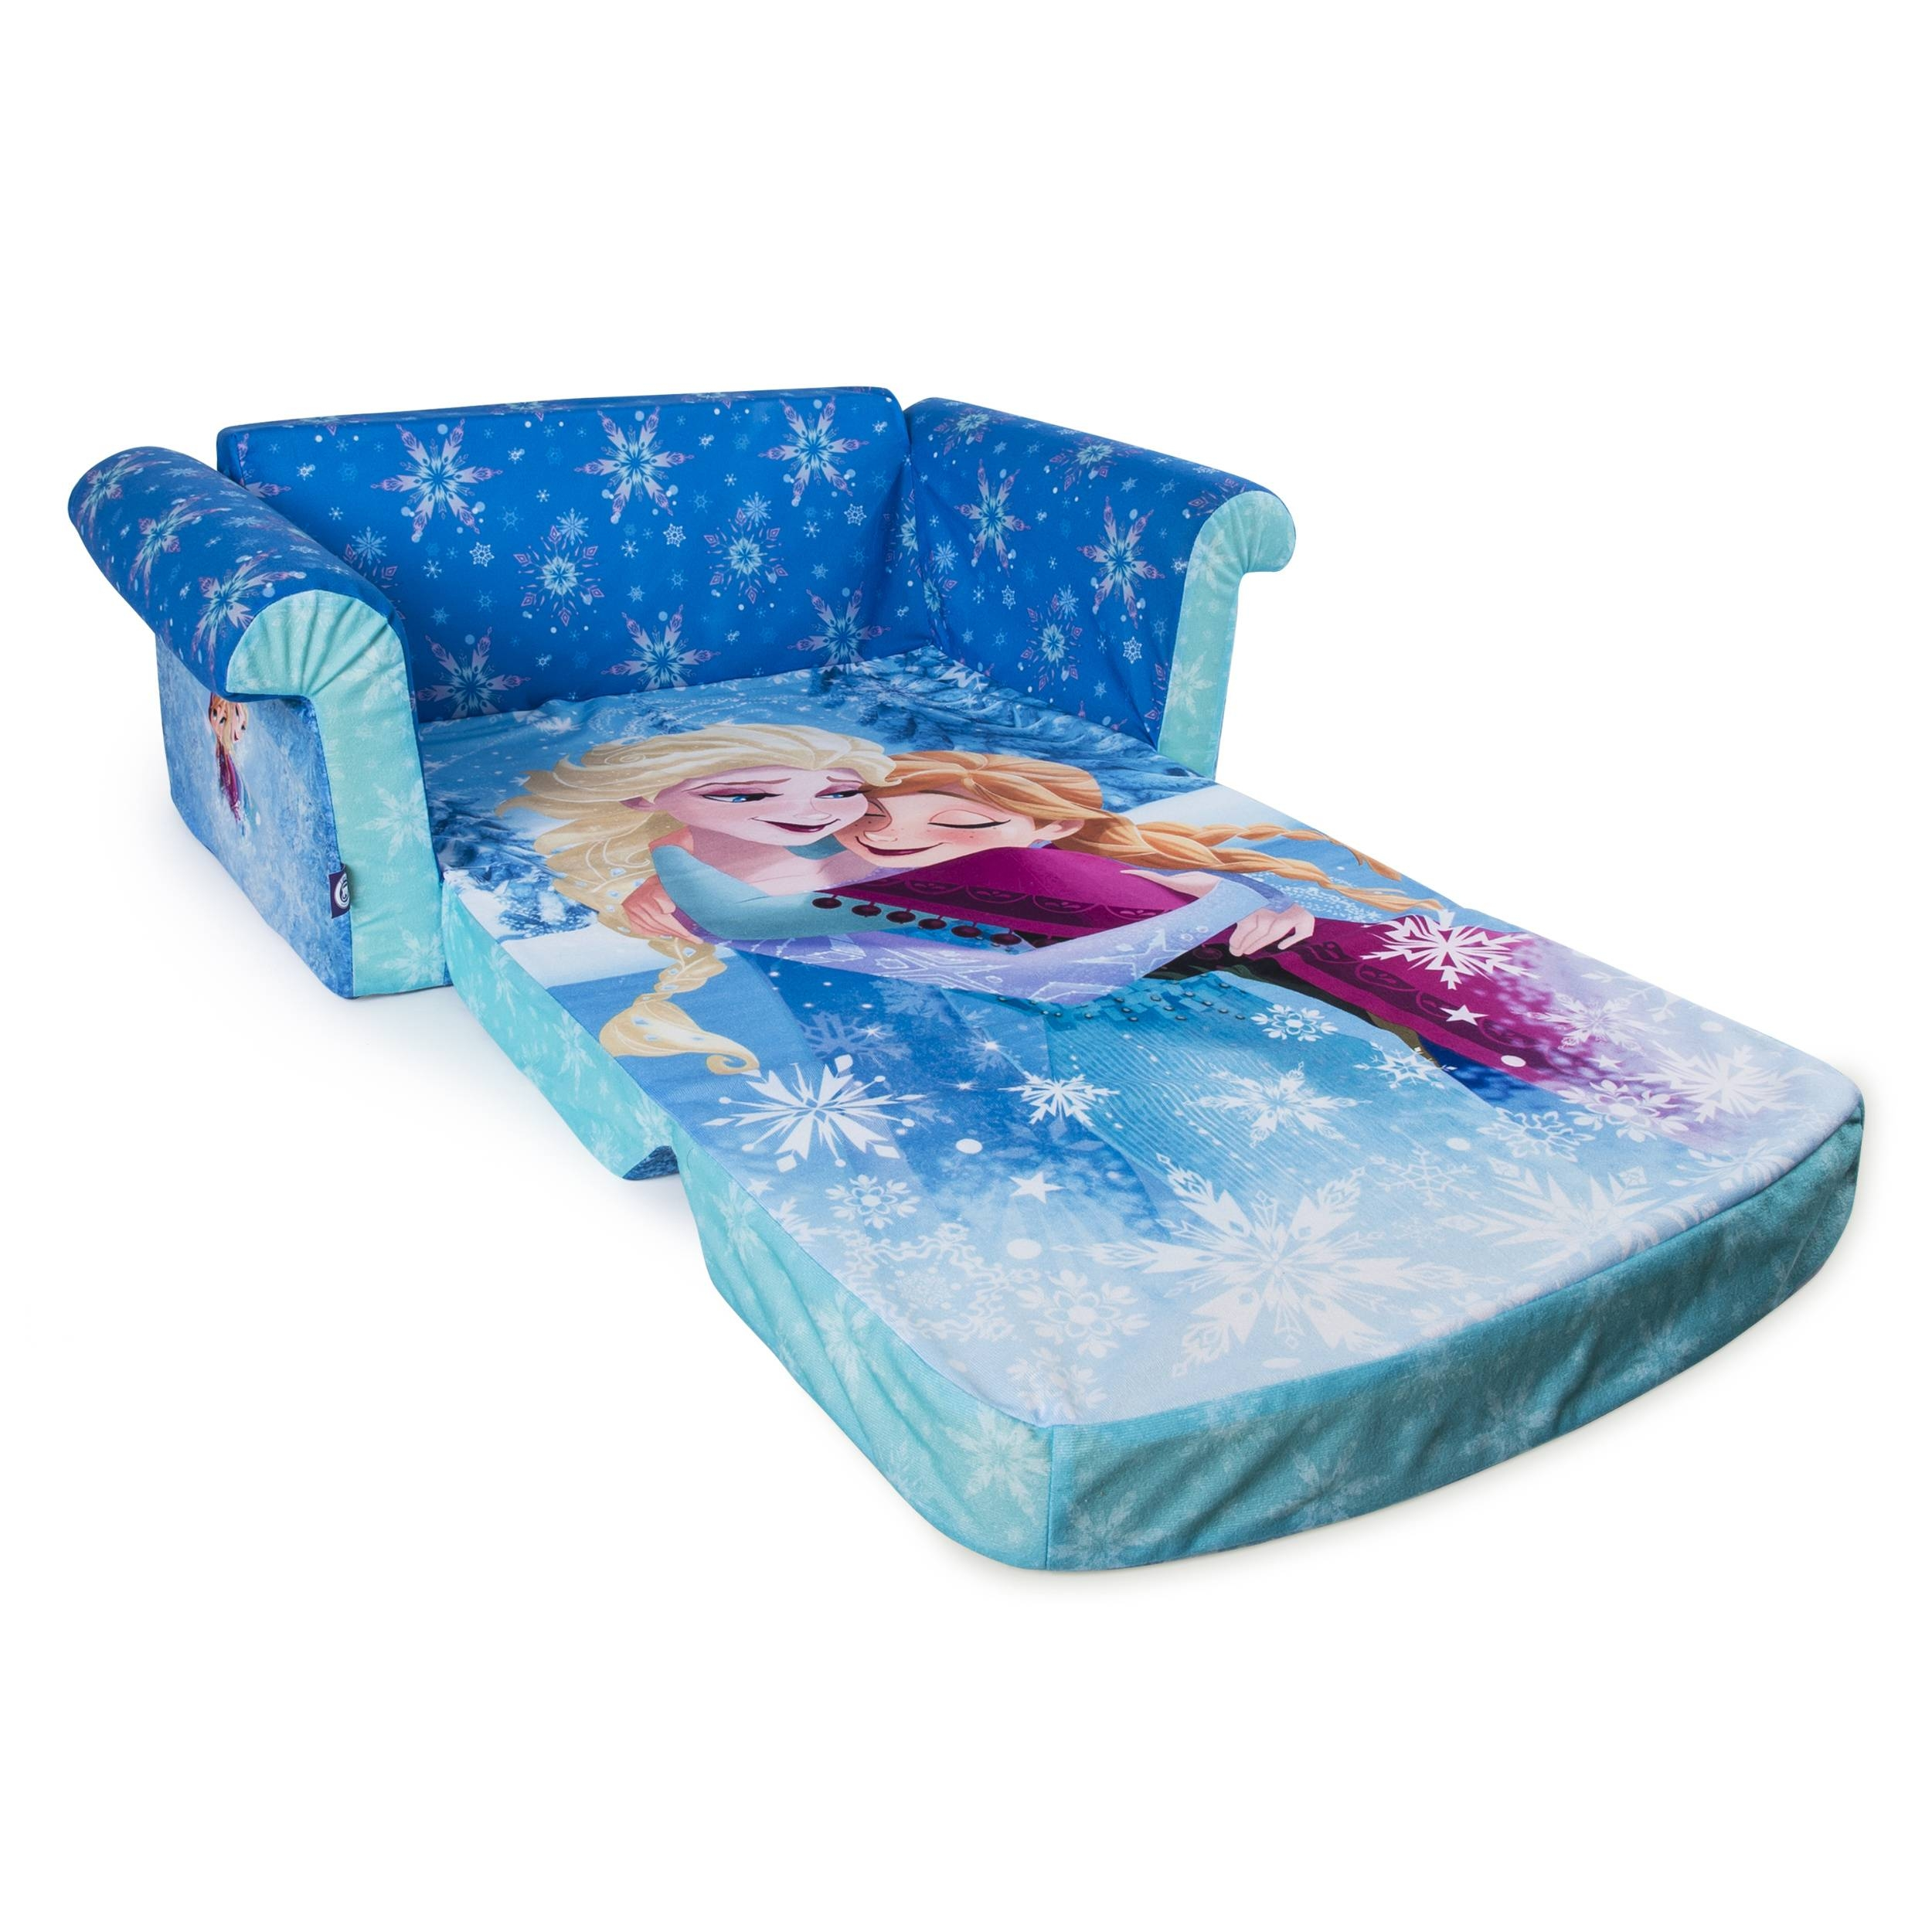 Marshmallow Furniture, Children's 2 In 1 Flip Open Foam Sofa pertaining to Disney Sofa Chairs (Image 9 of 15)